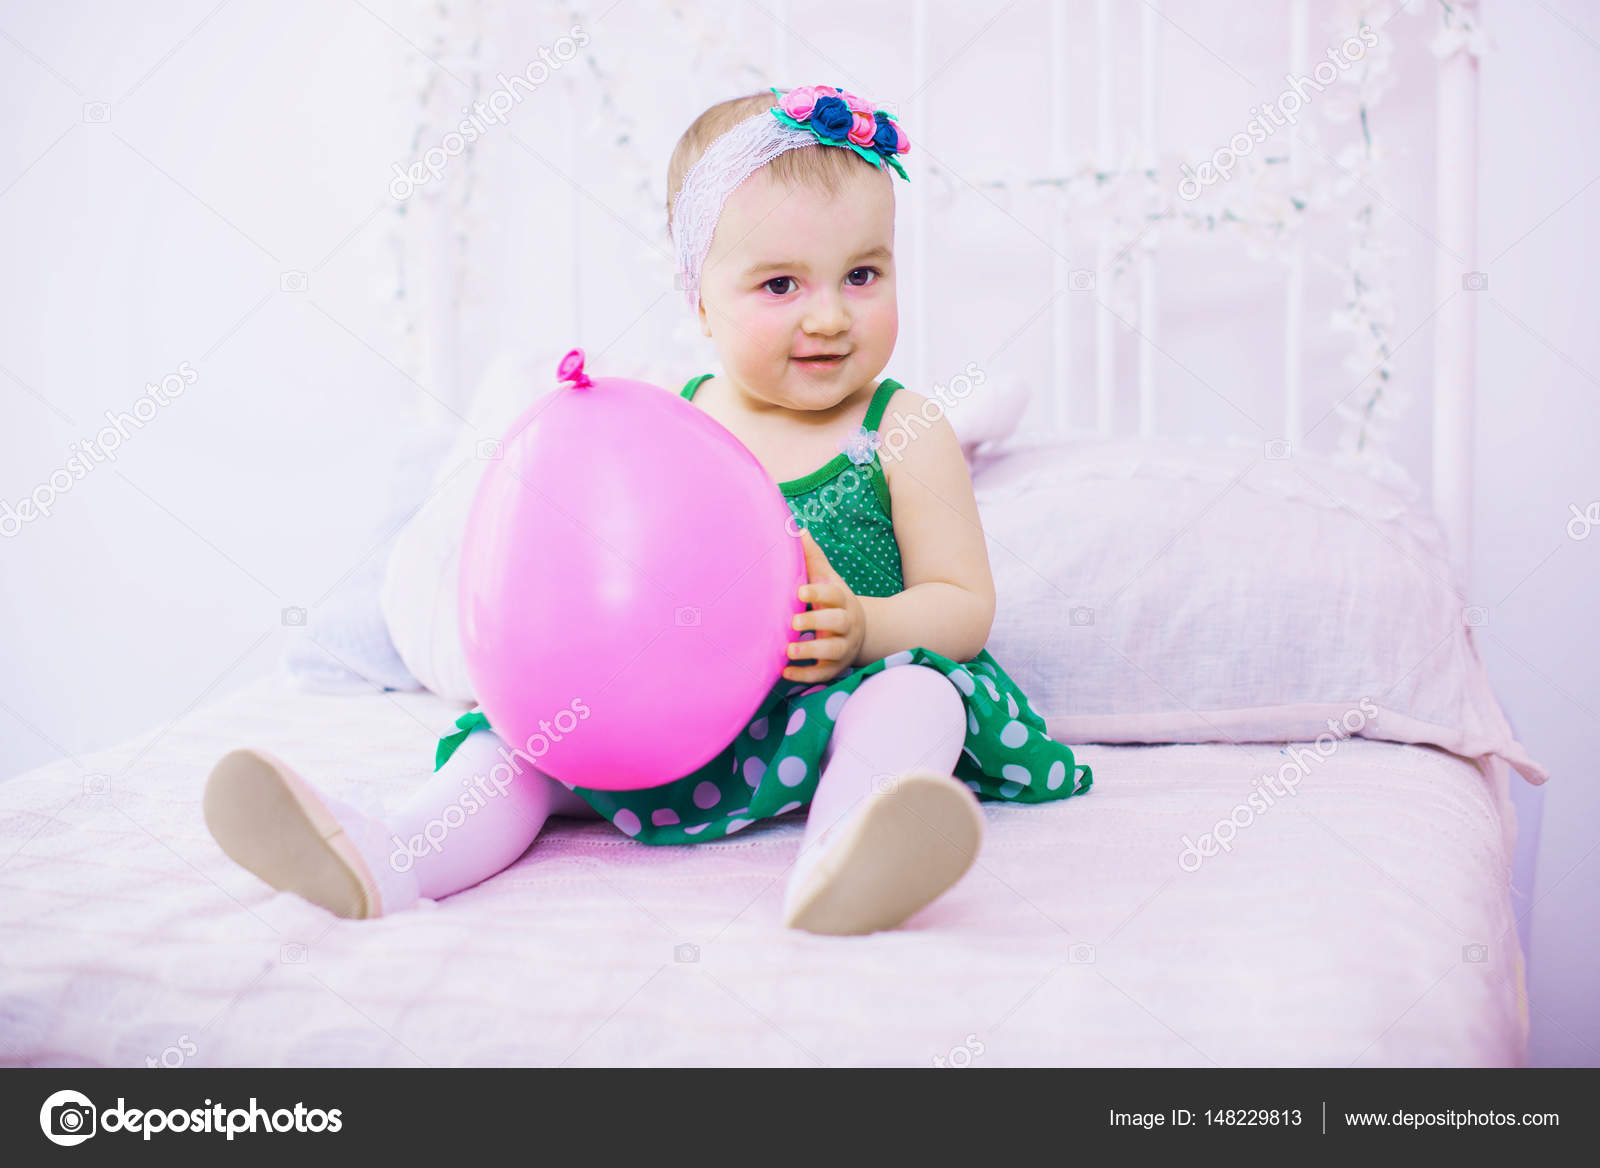 Cute baby girl 1 year old sitting on bed with pink balloon in room